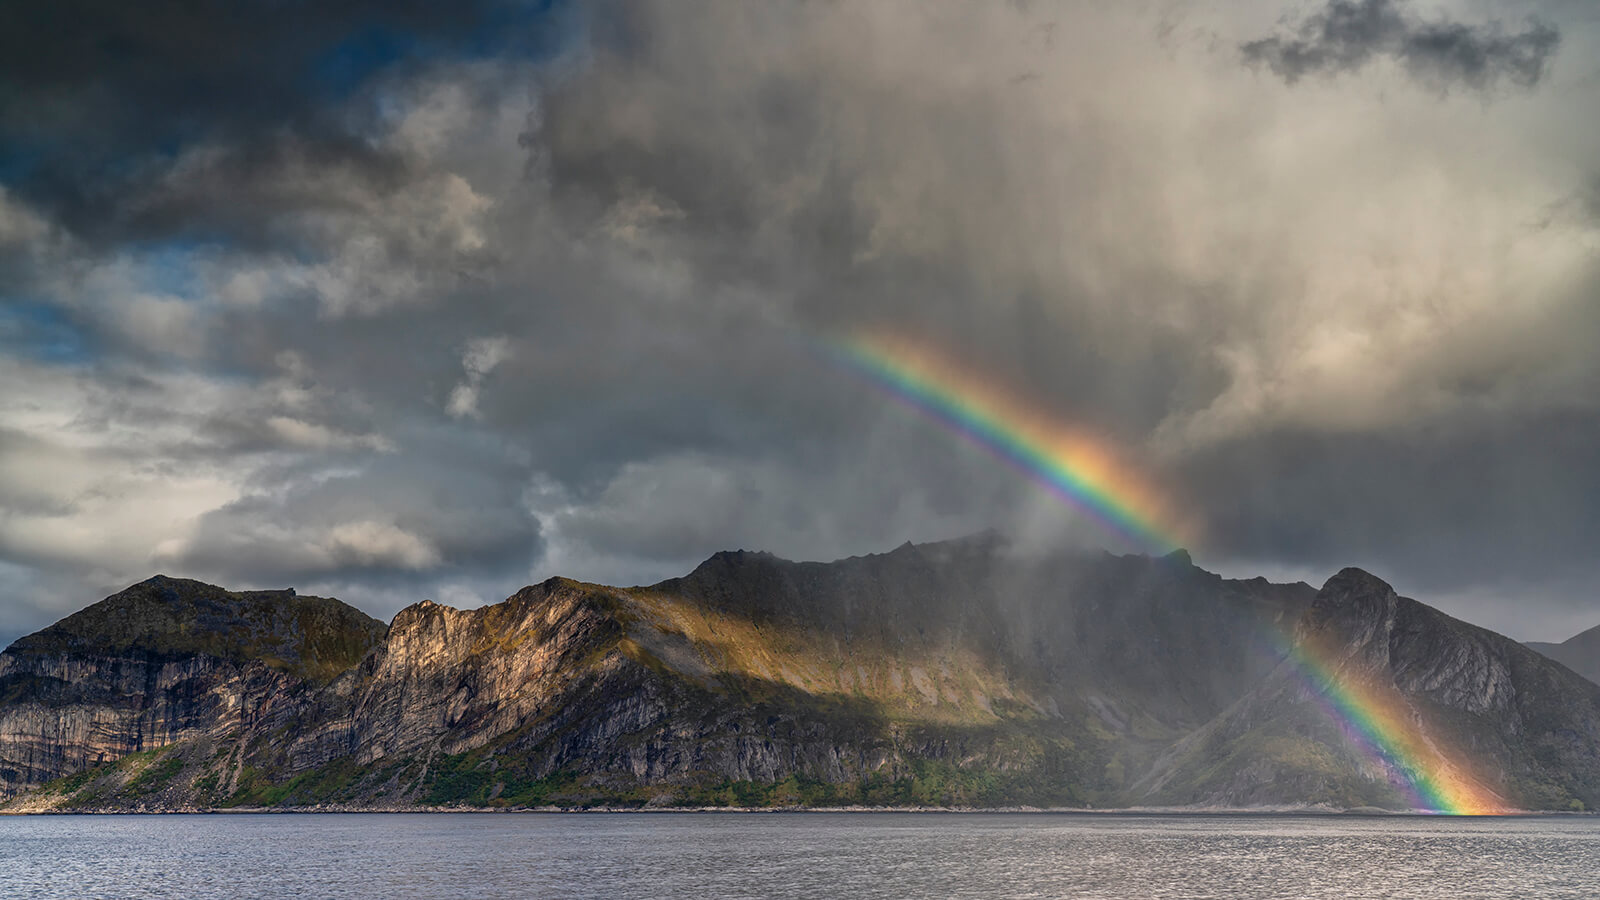 Rainbow over Senja, Joakim Jormelin